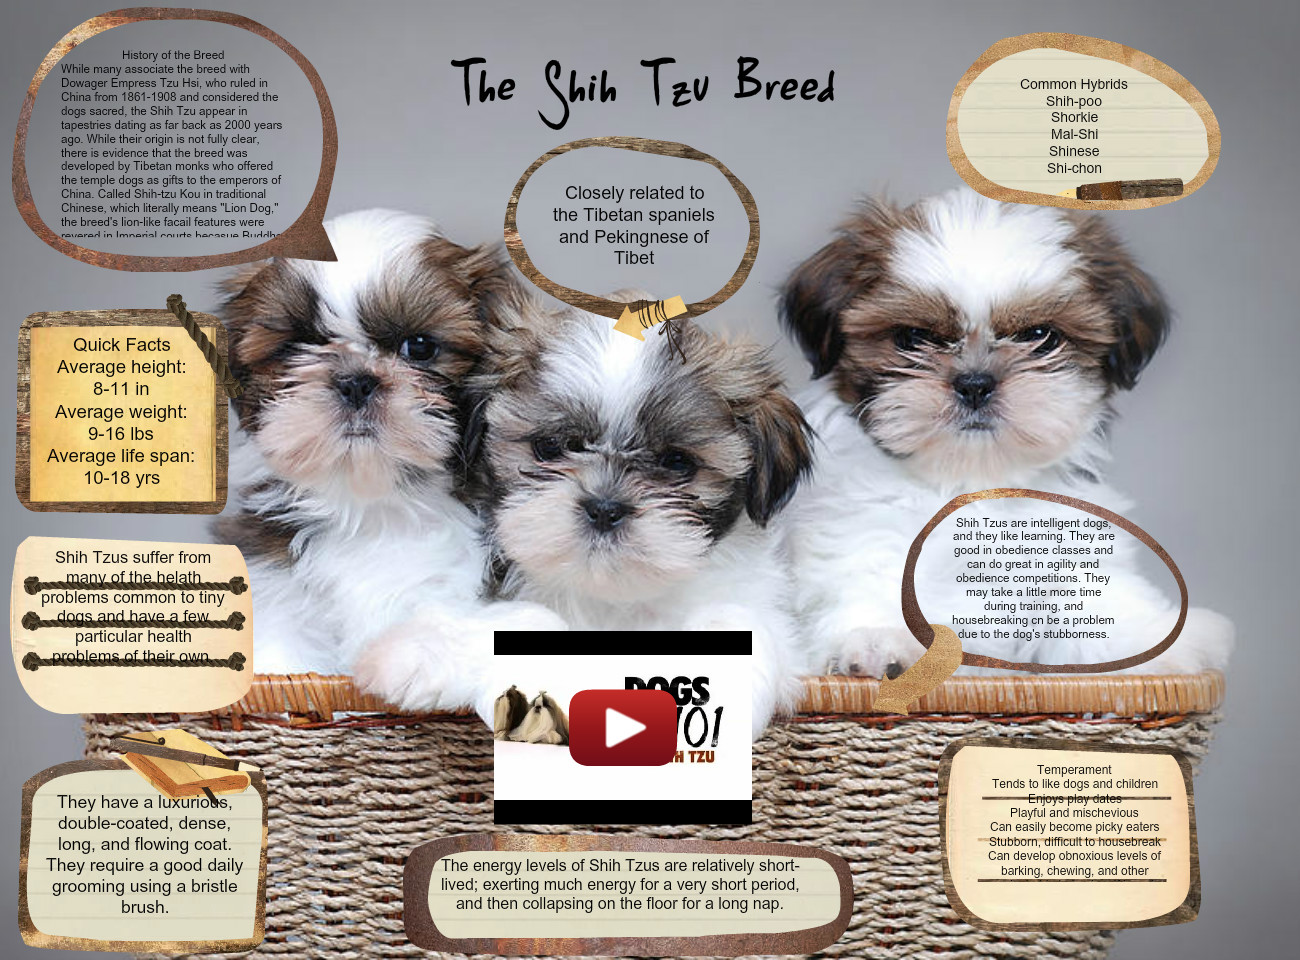 The Shih Tzu Breed Animals China Dog En Mammals Science Zoology Glogster Edu Interactive Multimedia Posters